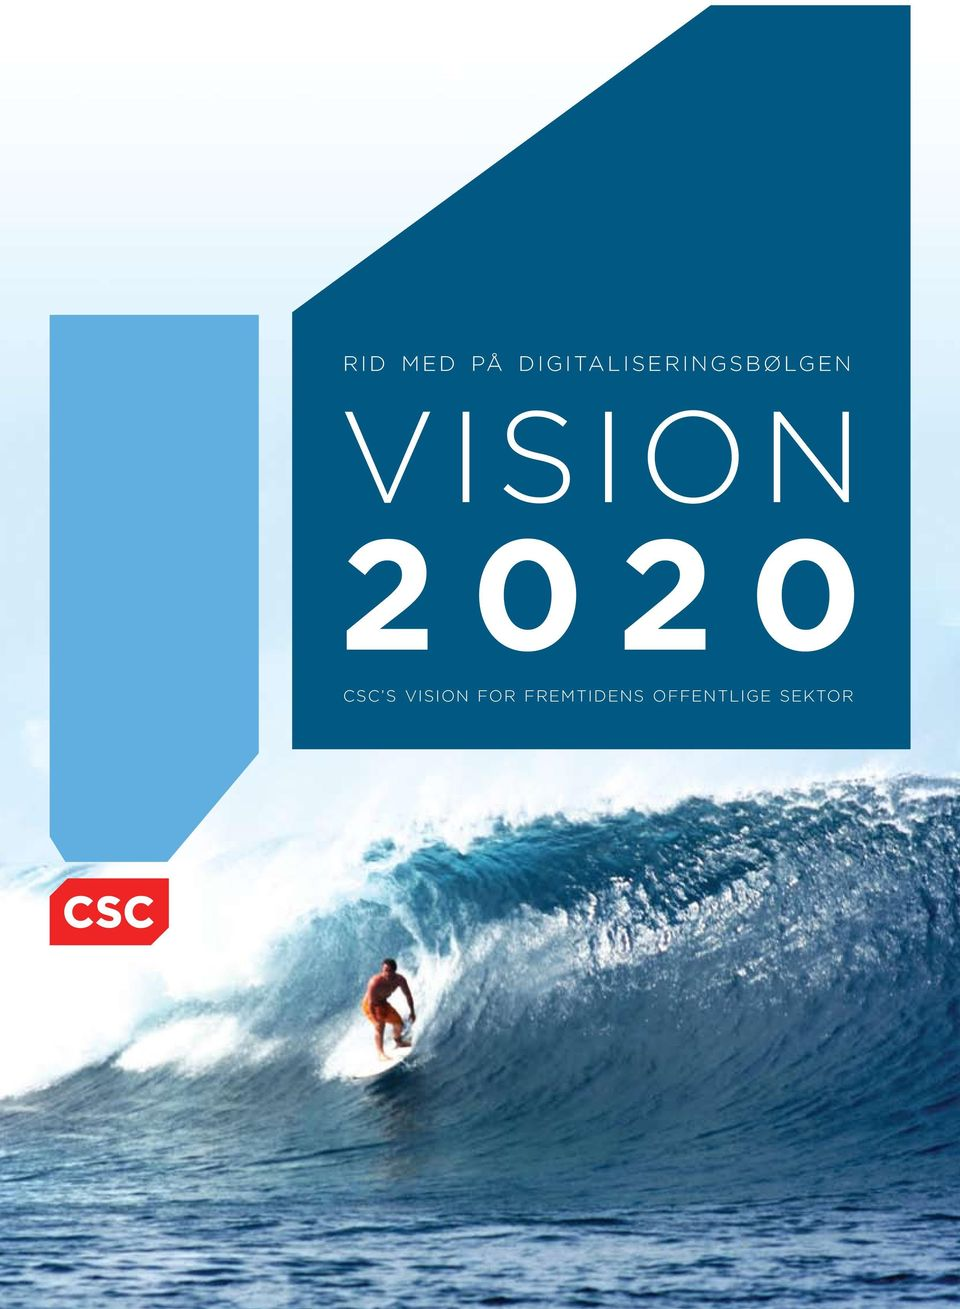 VISION 2020 CSC S